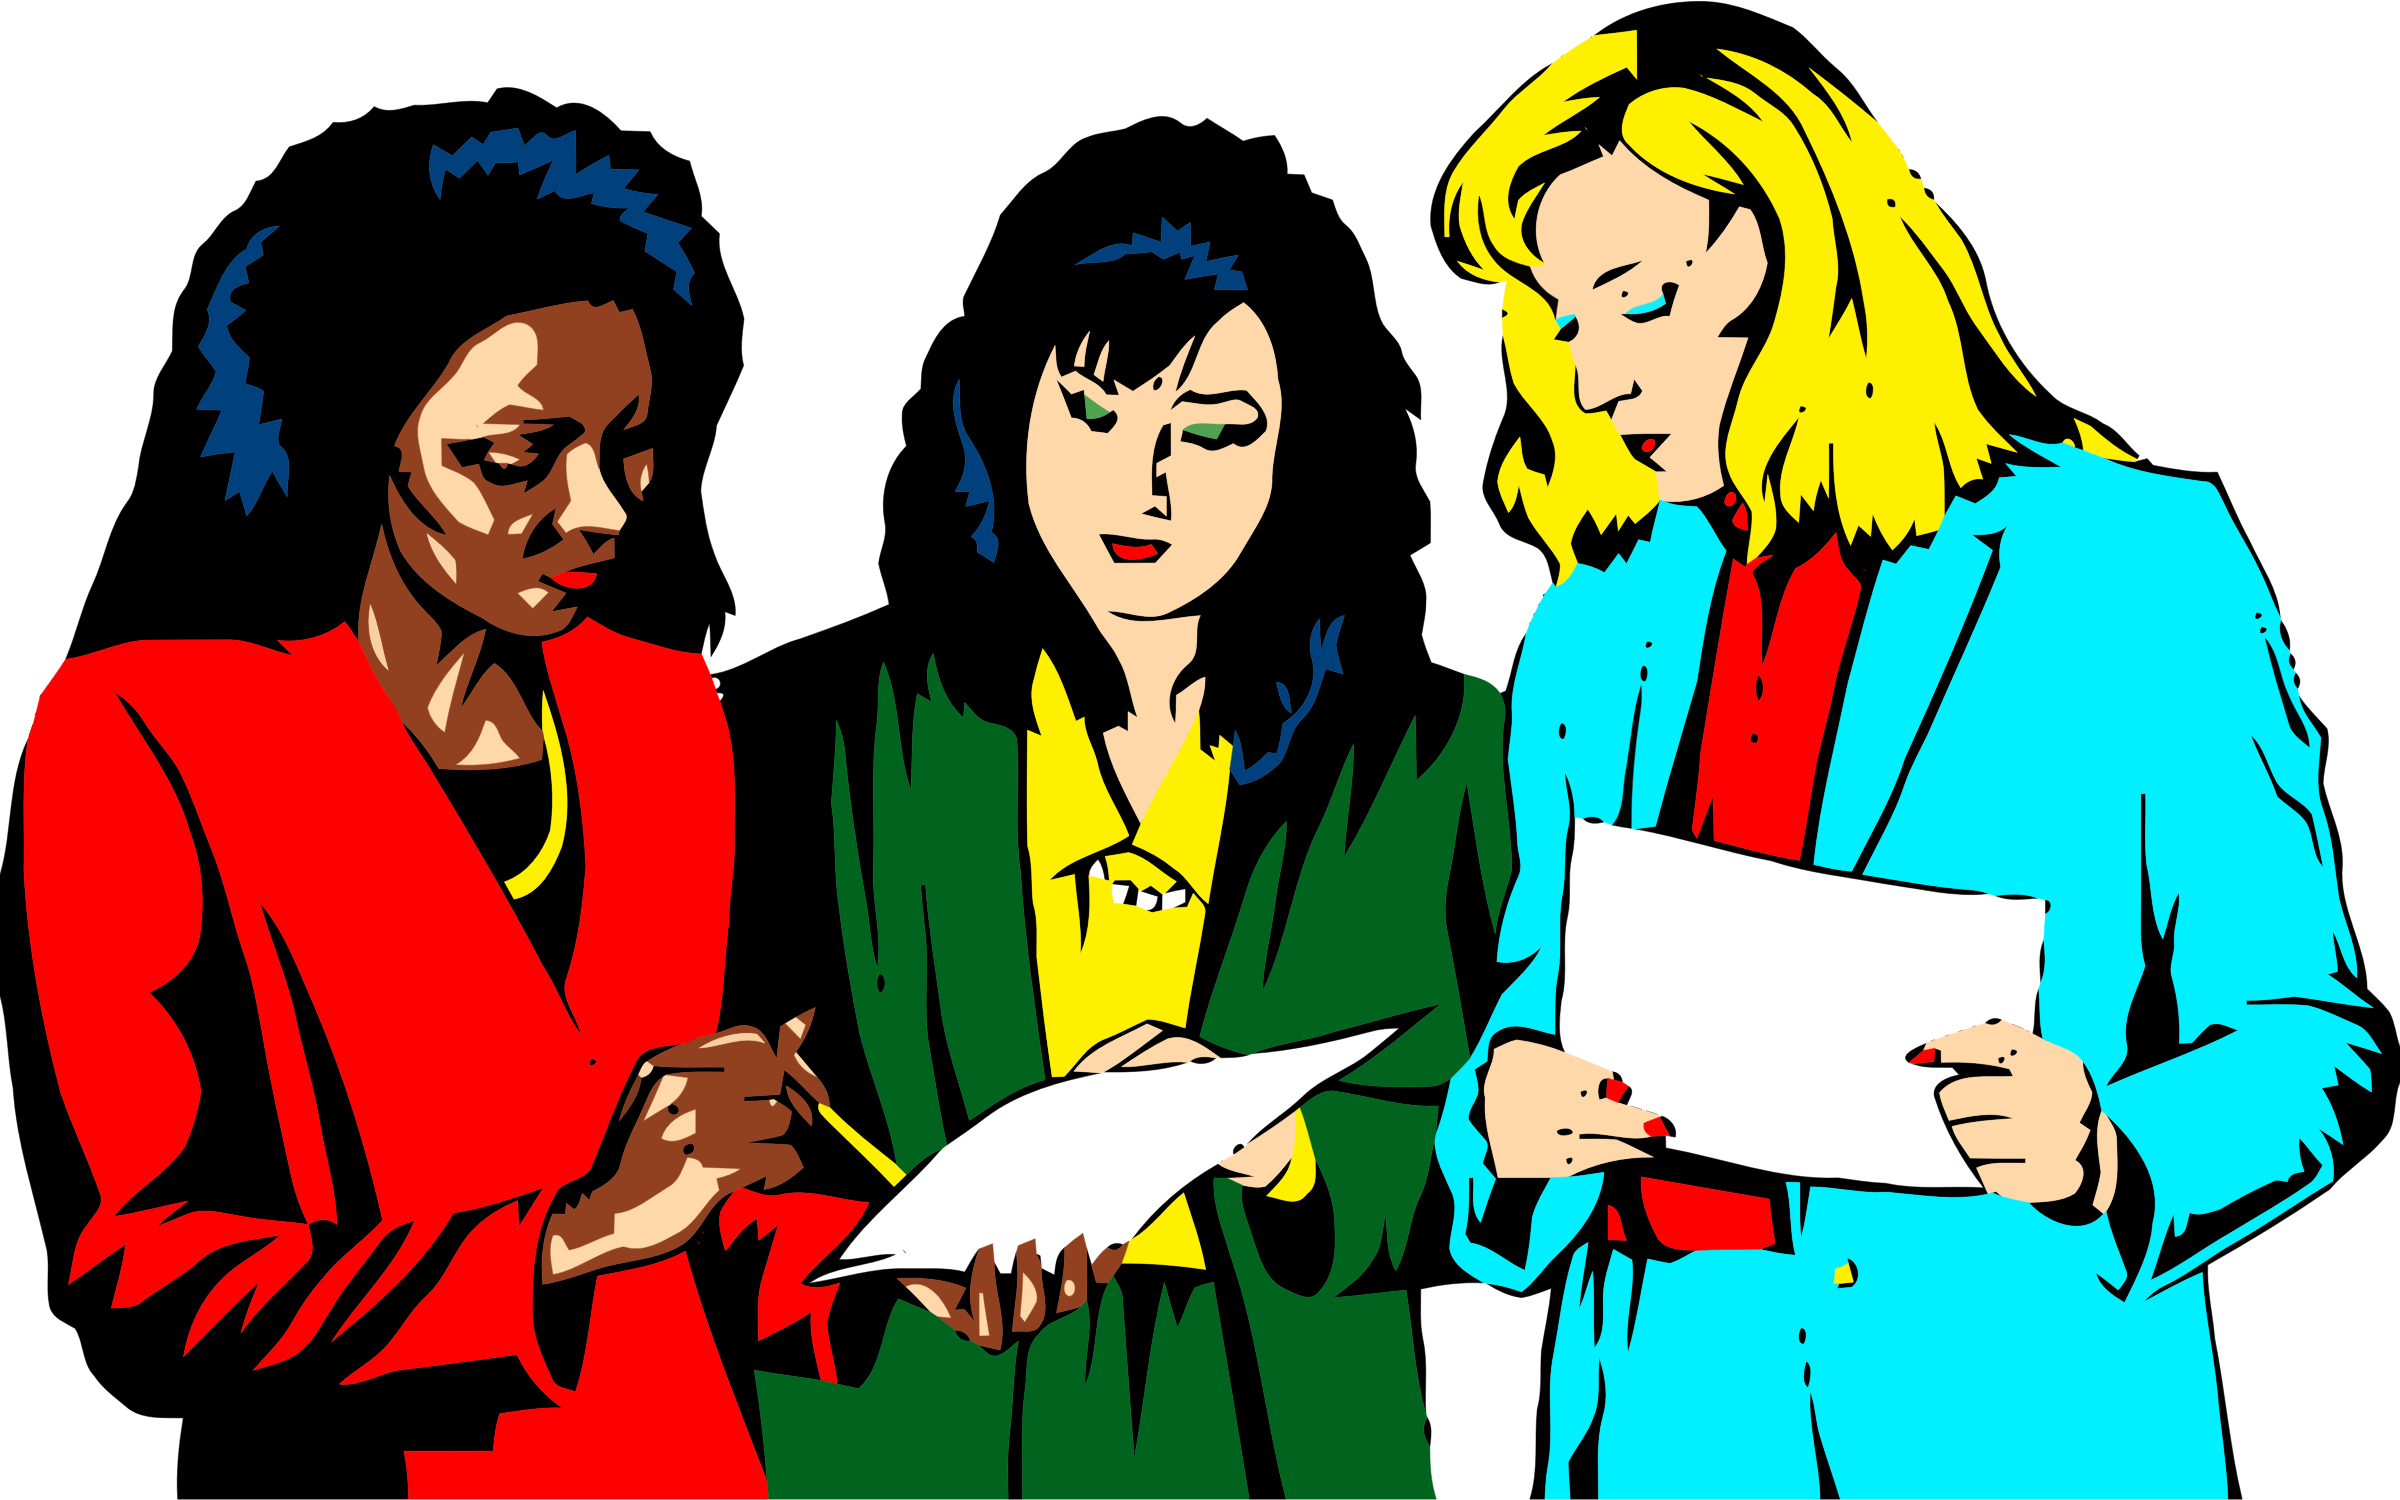 Women big image png. Teamwork clipart person